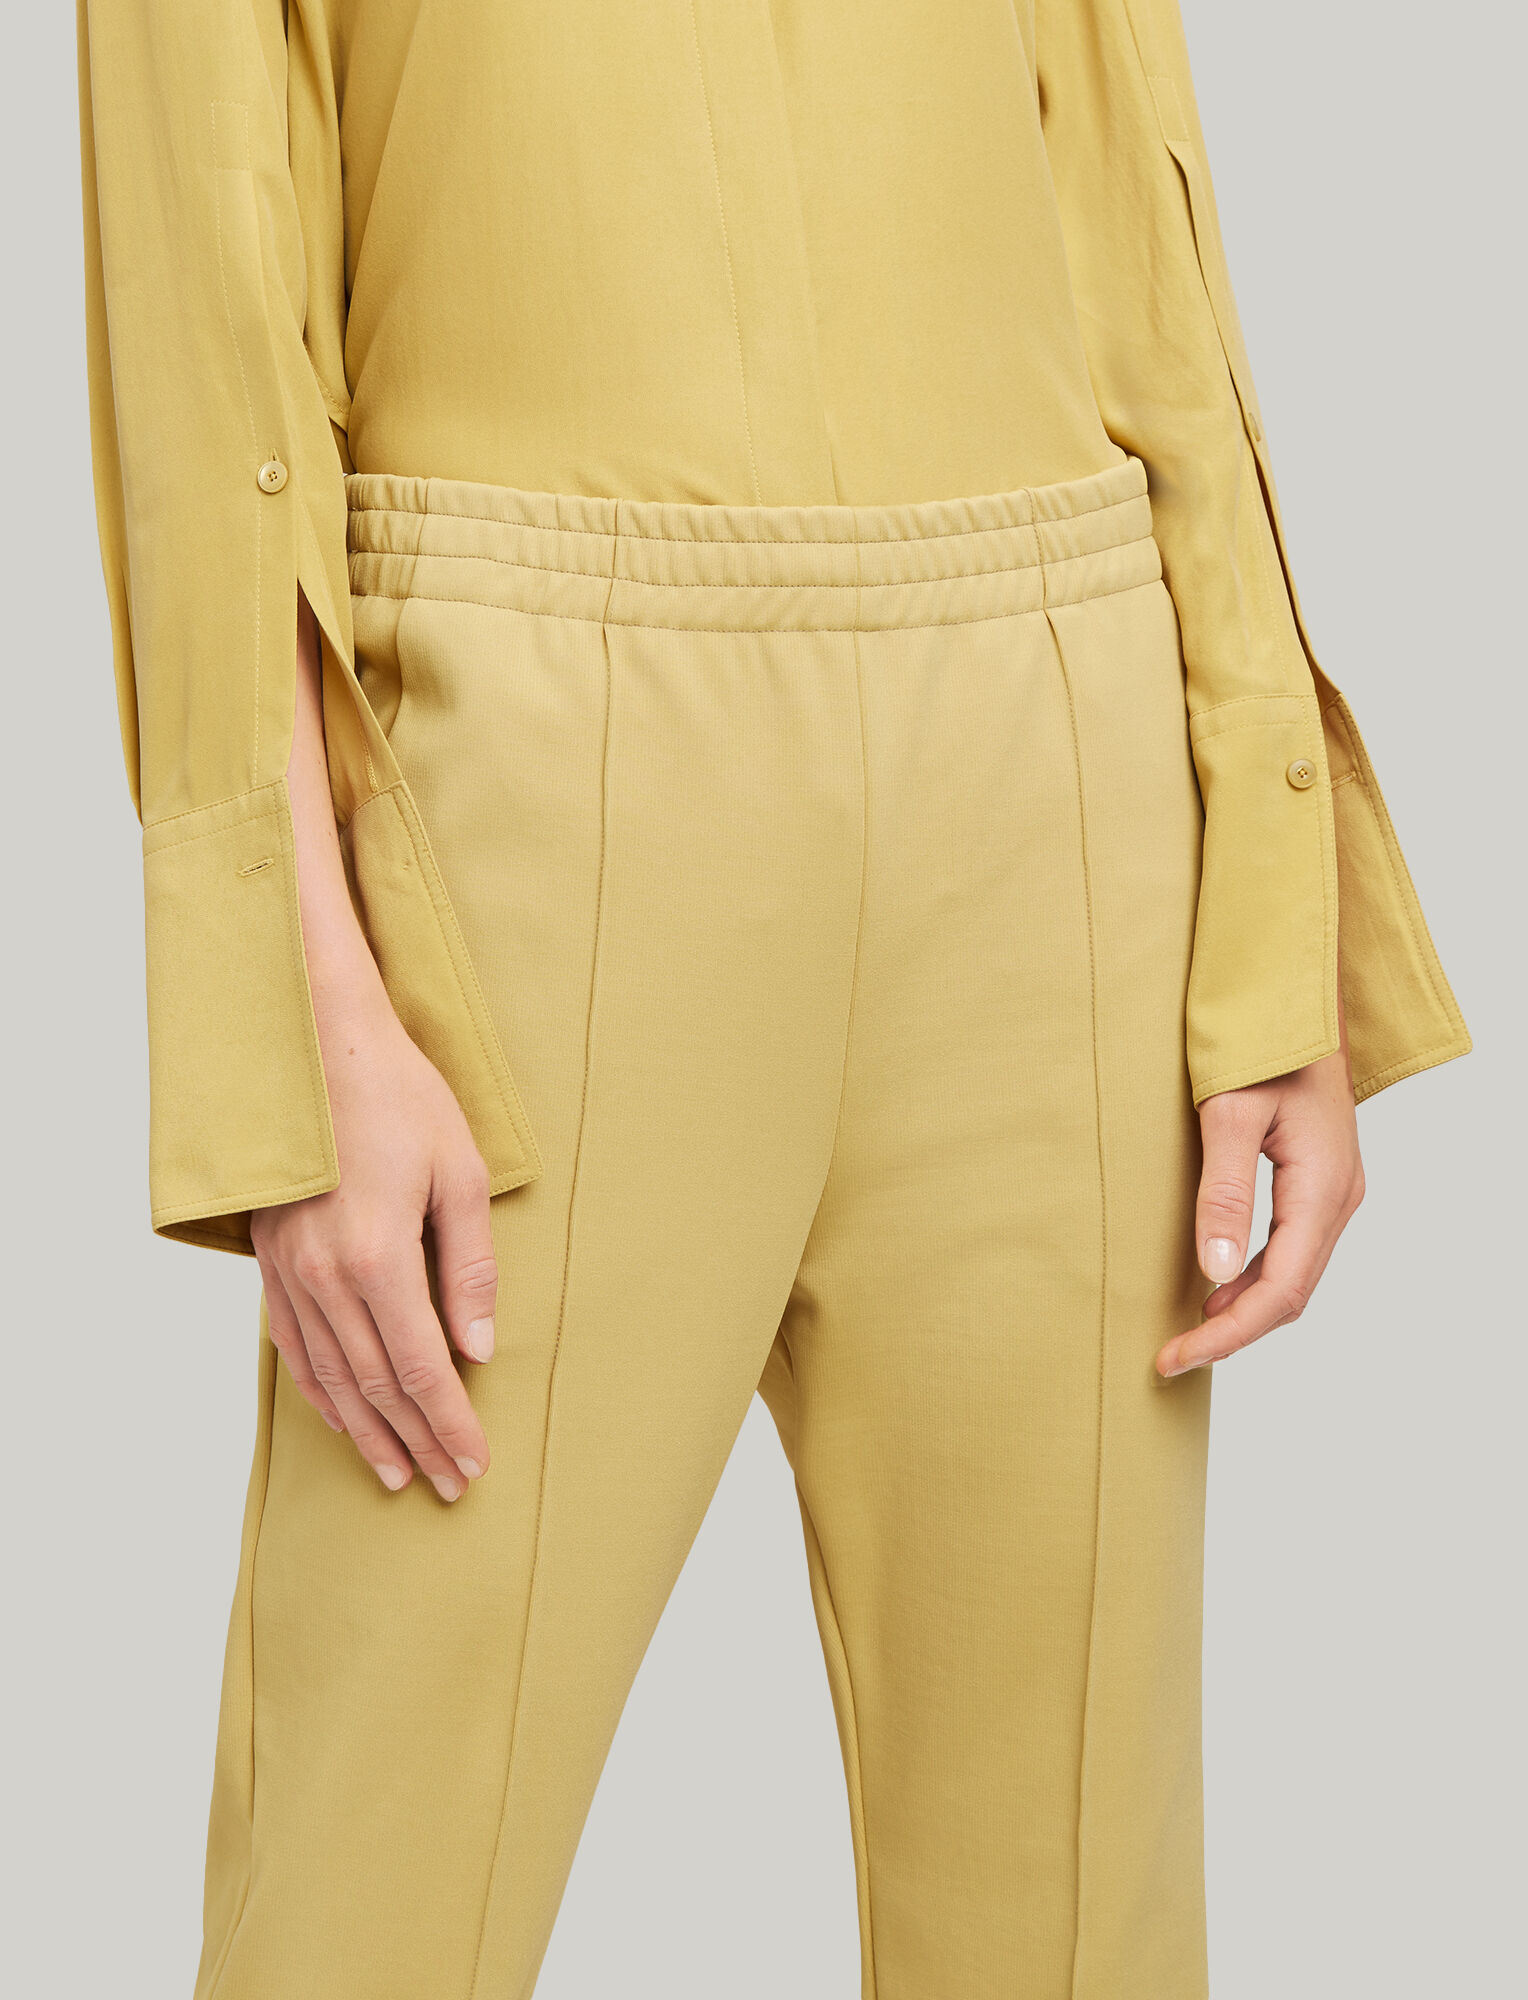 Joseph, Jog Technical Jersey Trousers, in DIJON